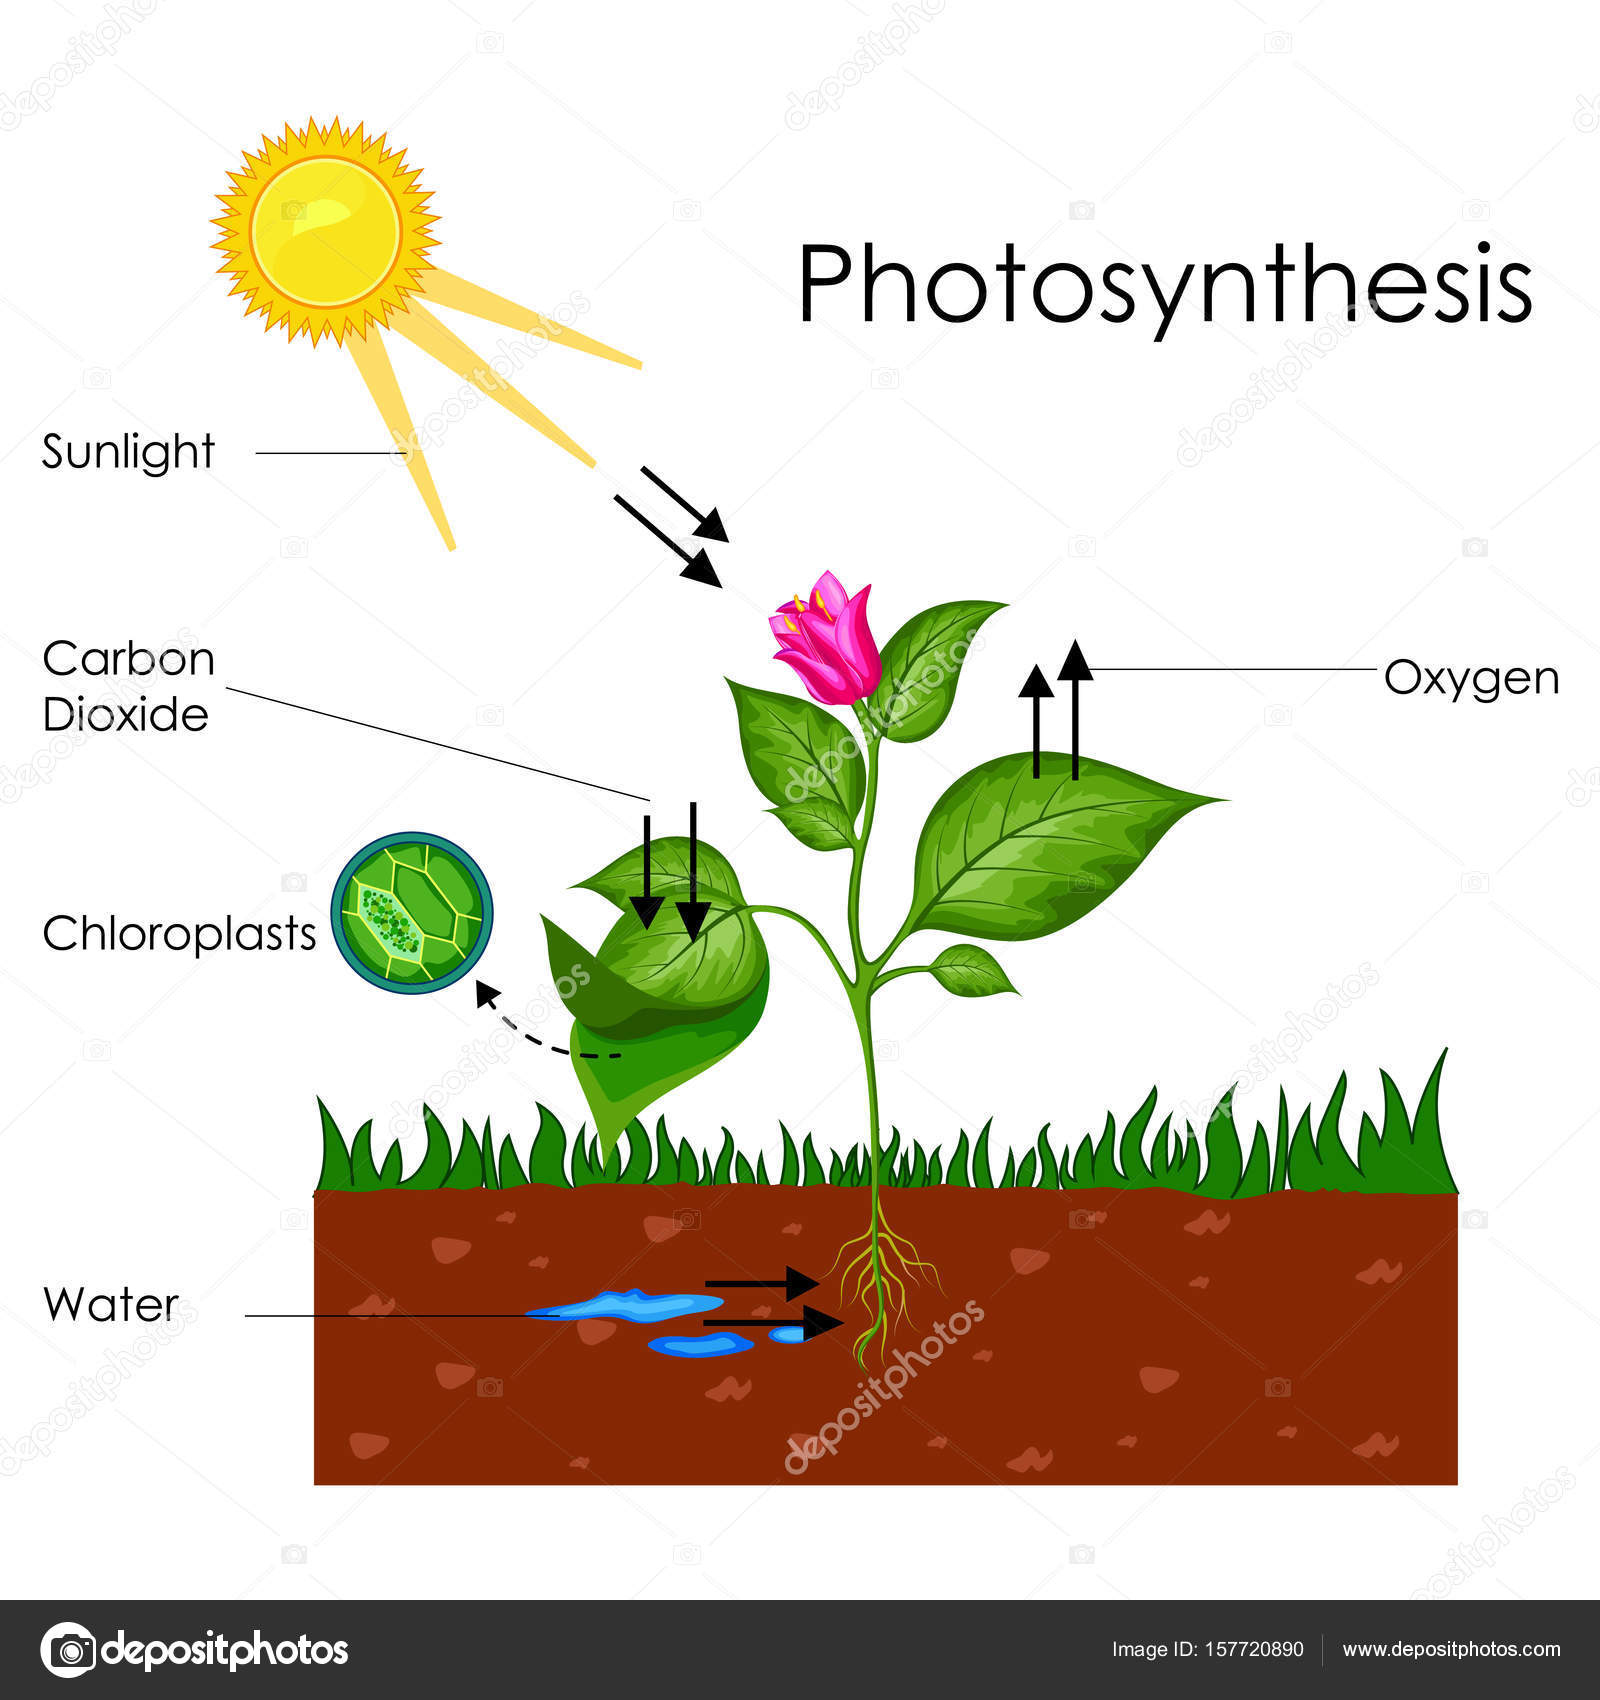 For photosynthesis oxygen is obtained from the breakdown of BBC - GCSE Bitesize Science - Food Production